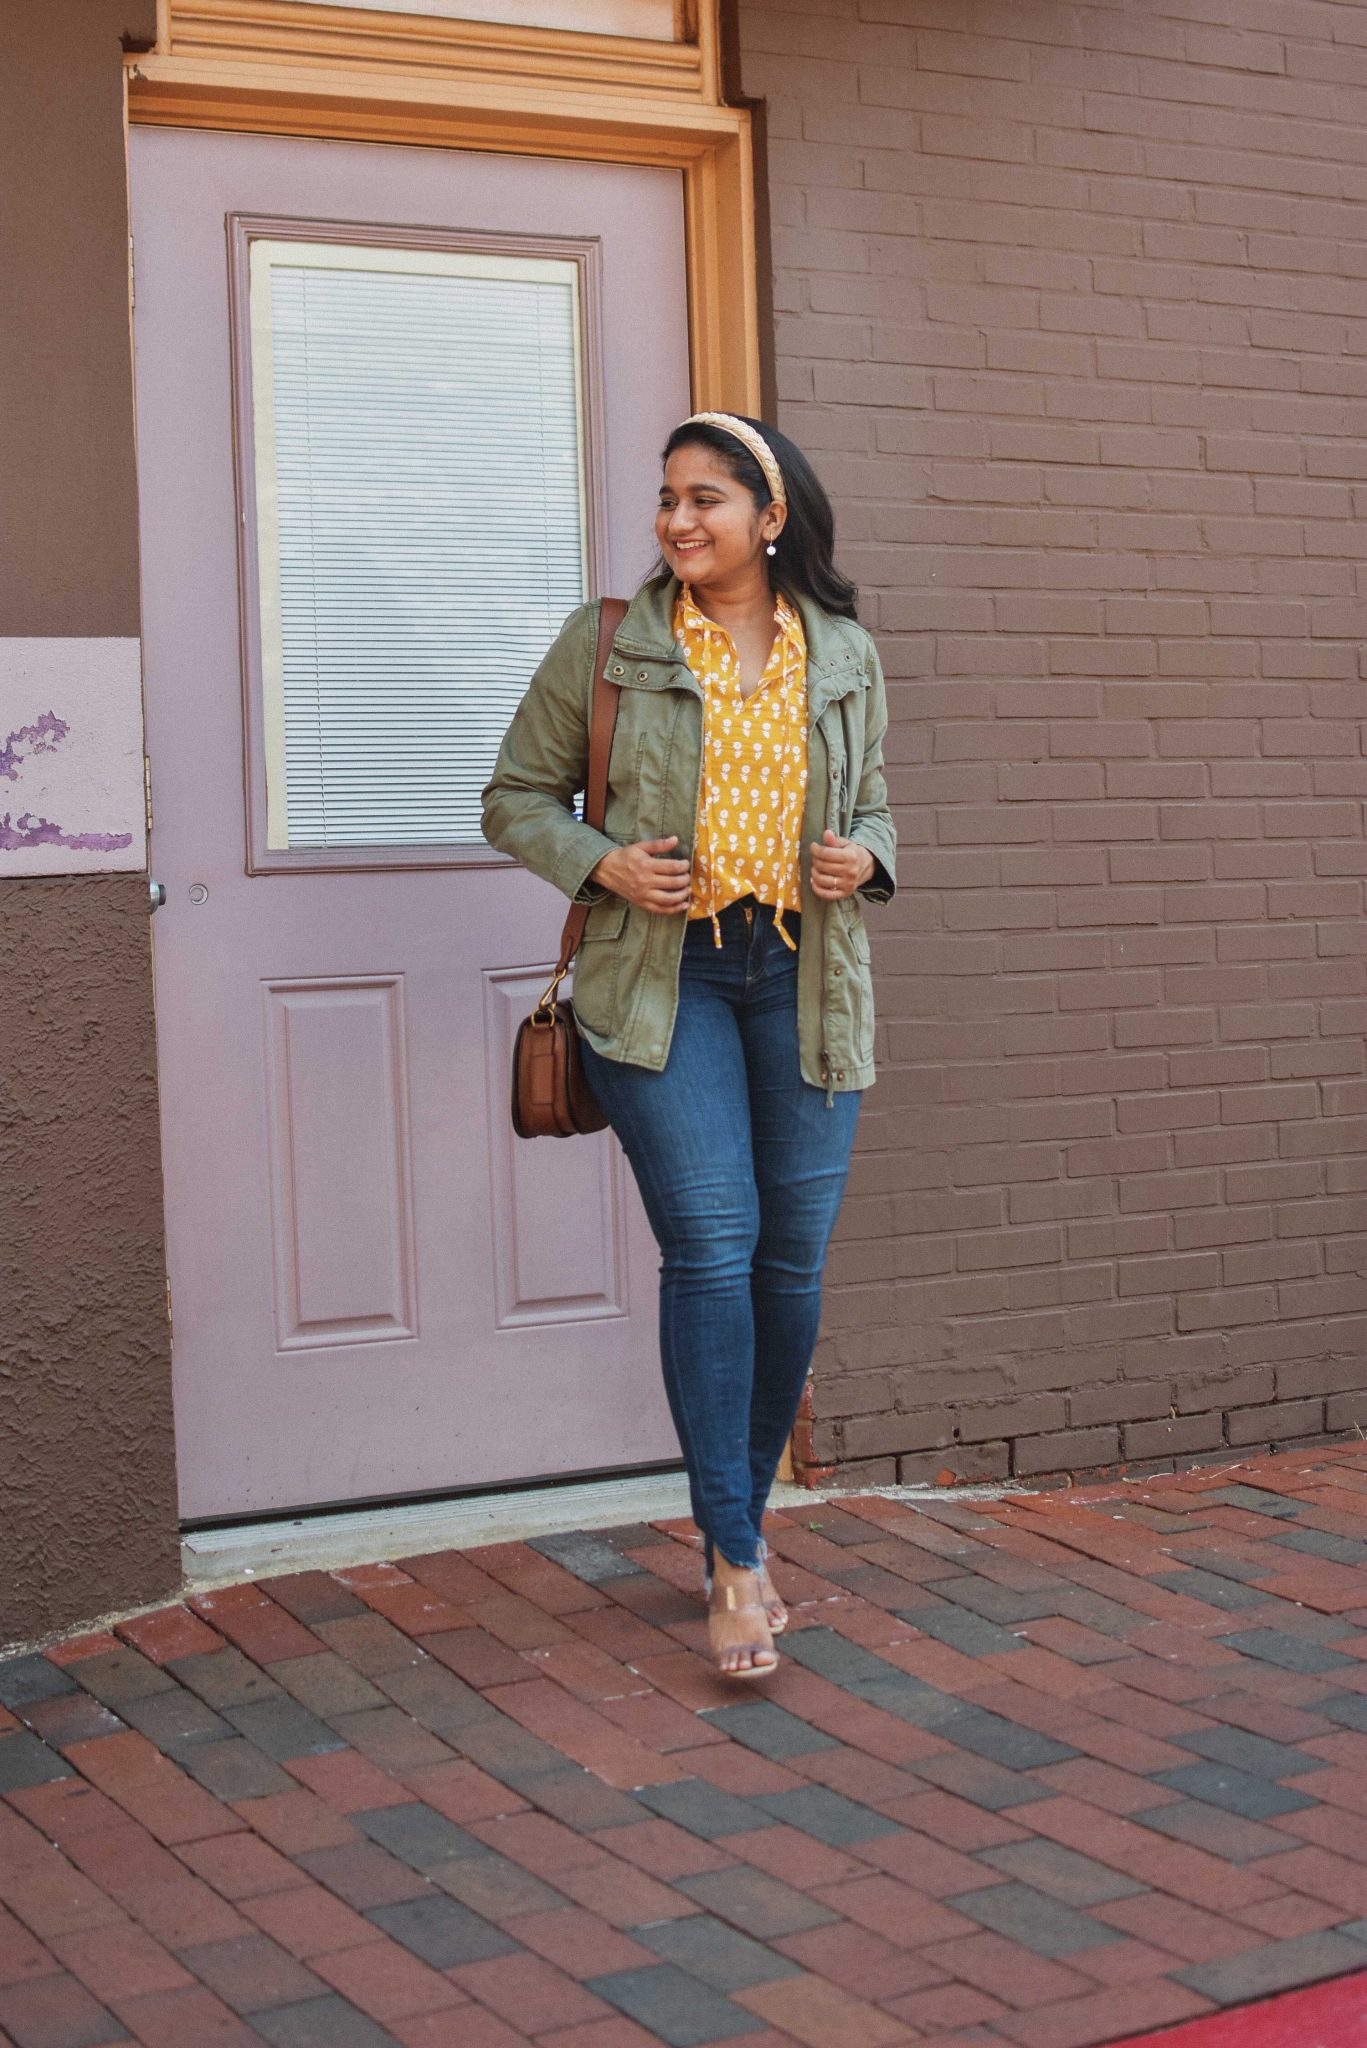 7 Cute Utility jacket Outfits featured by top Maryland fashion blogger, Dreaming Loud: image of a woman wearing J.Crew Ruffle Sleeve Cotton voile top, AG ankle legging jeans, Schutz Ariella mule, Madewell utility Passage Jacket |Utility Jackets by popular Maryland modest fashion blog, Dreaming Loud: image of a woman wearing a utility jacket with a yellow printed blouse and jeans.